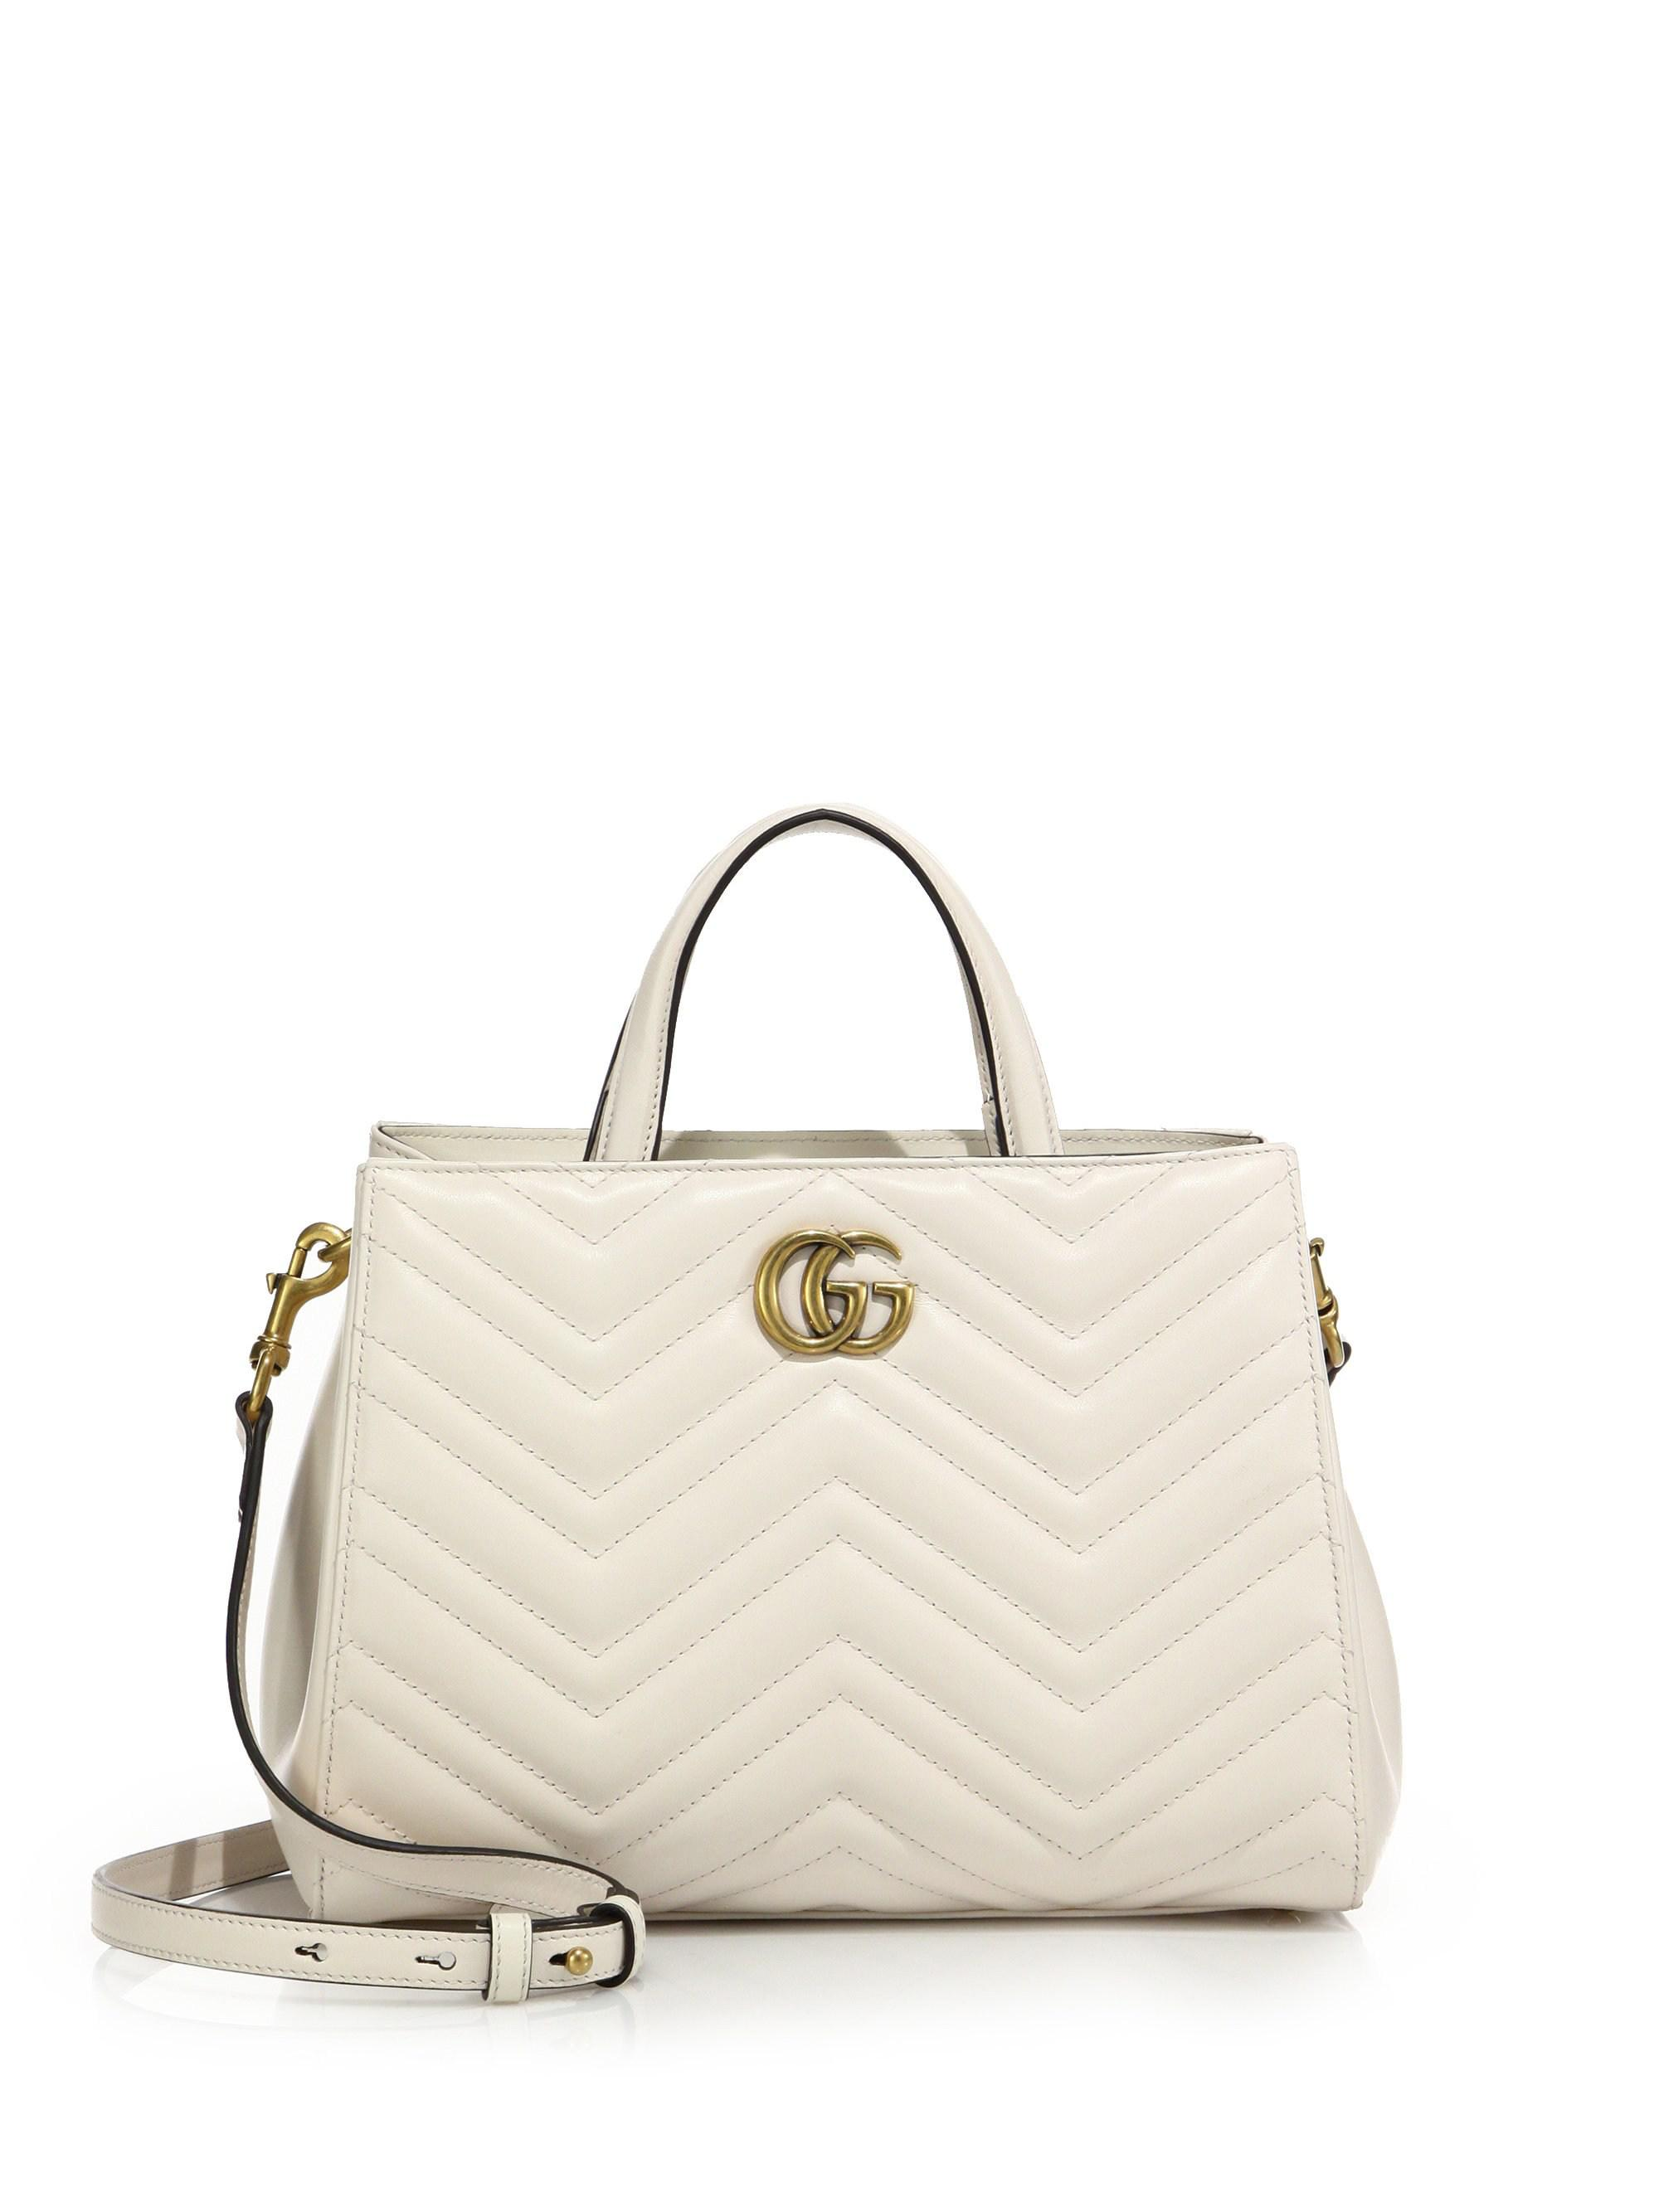 e1aeaac79f74 Gucci GG Marmont Matelasse Leather Top-Handle Tote in White - Lyst